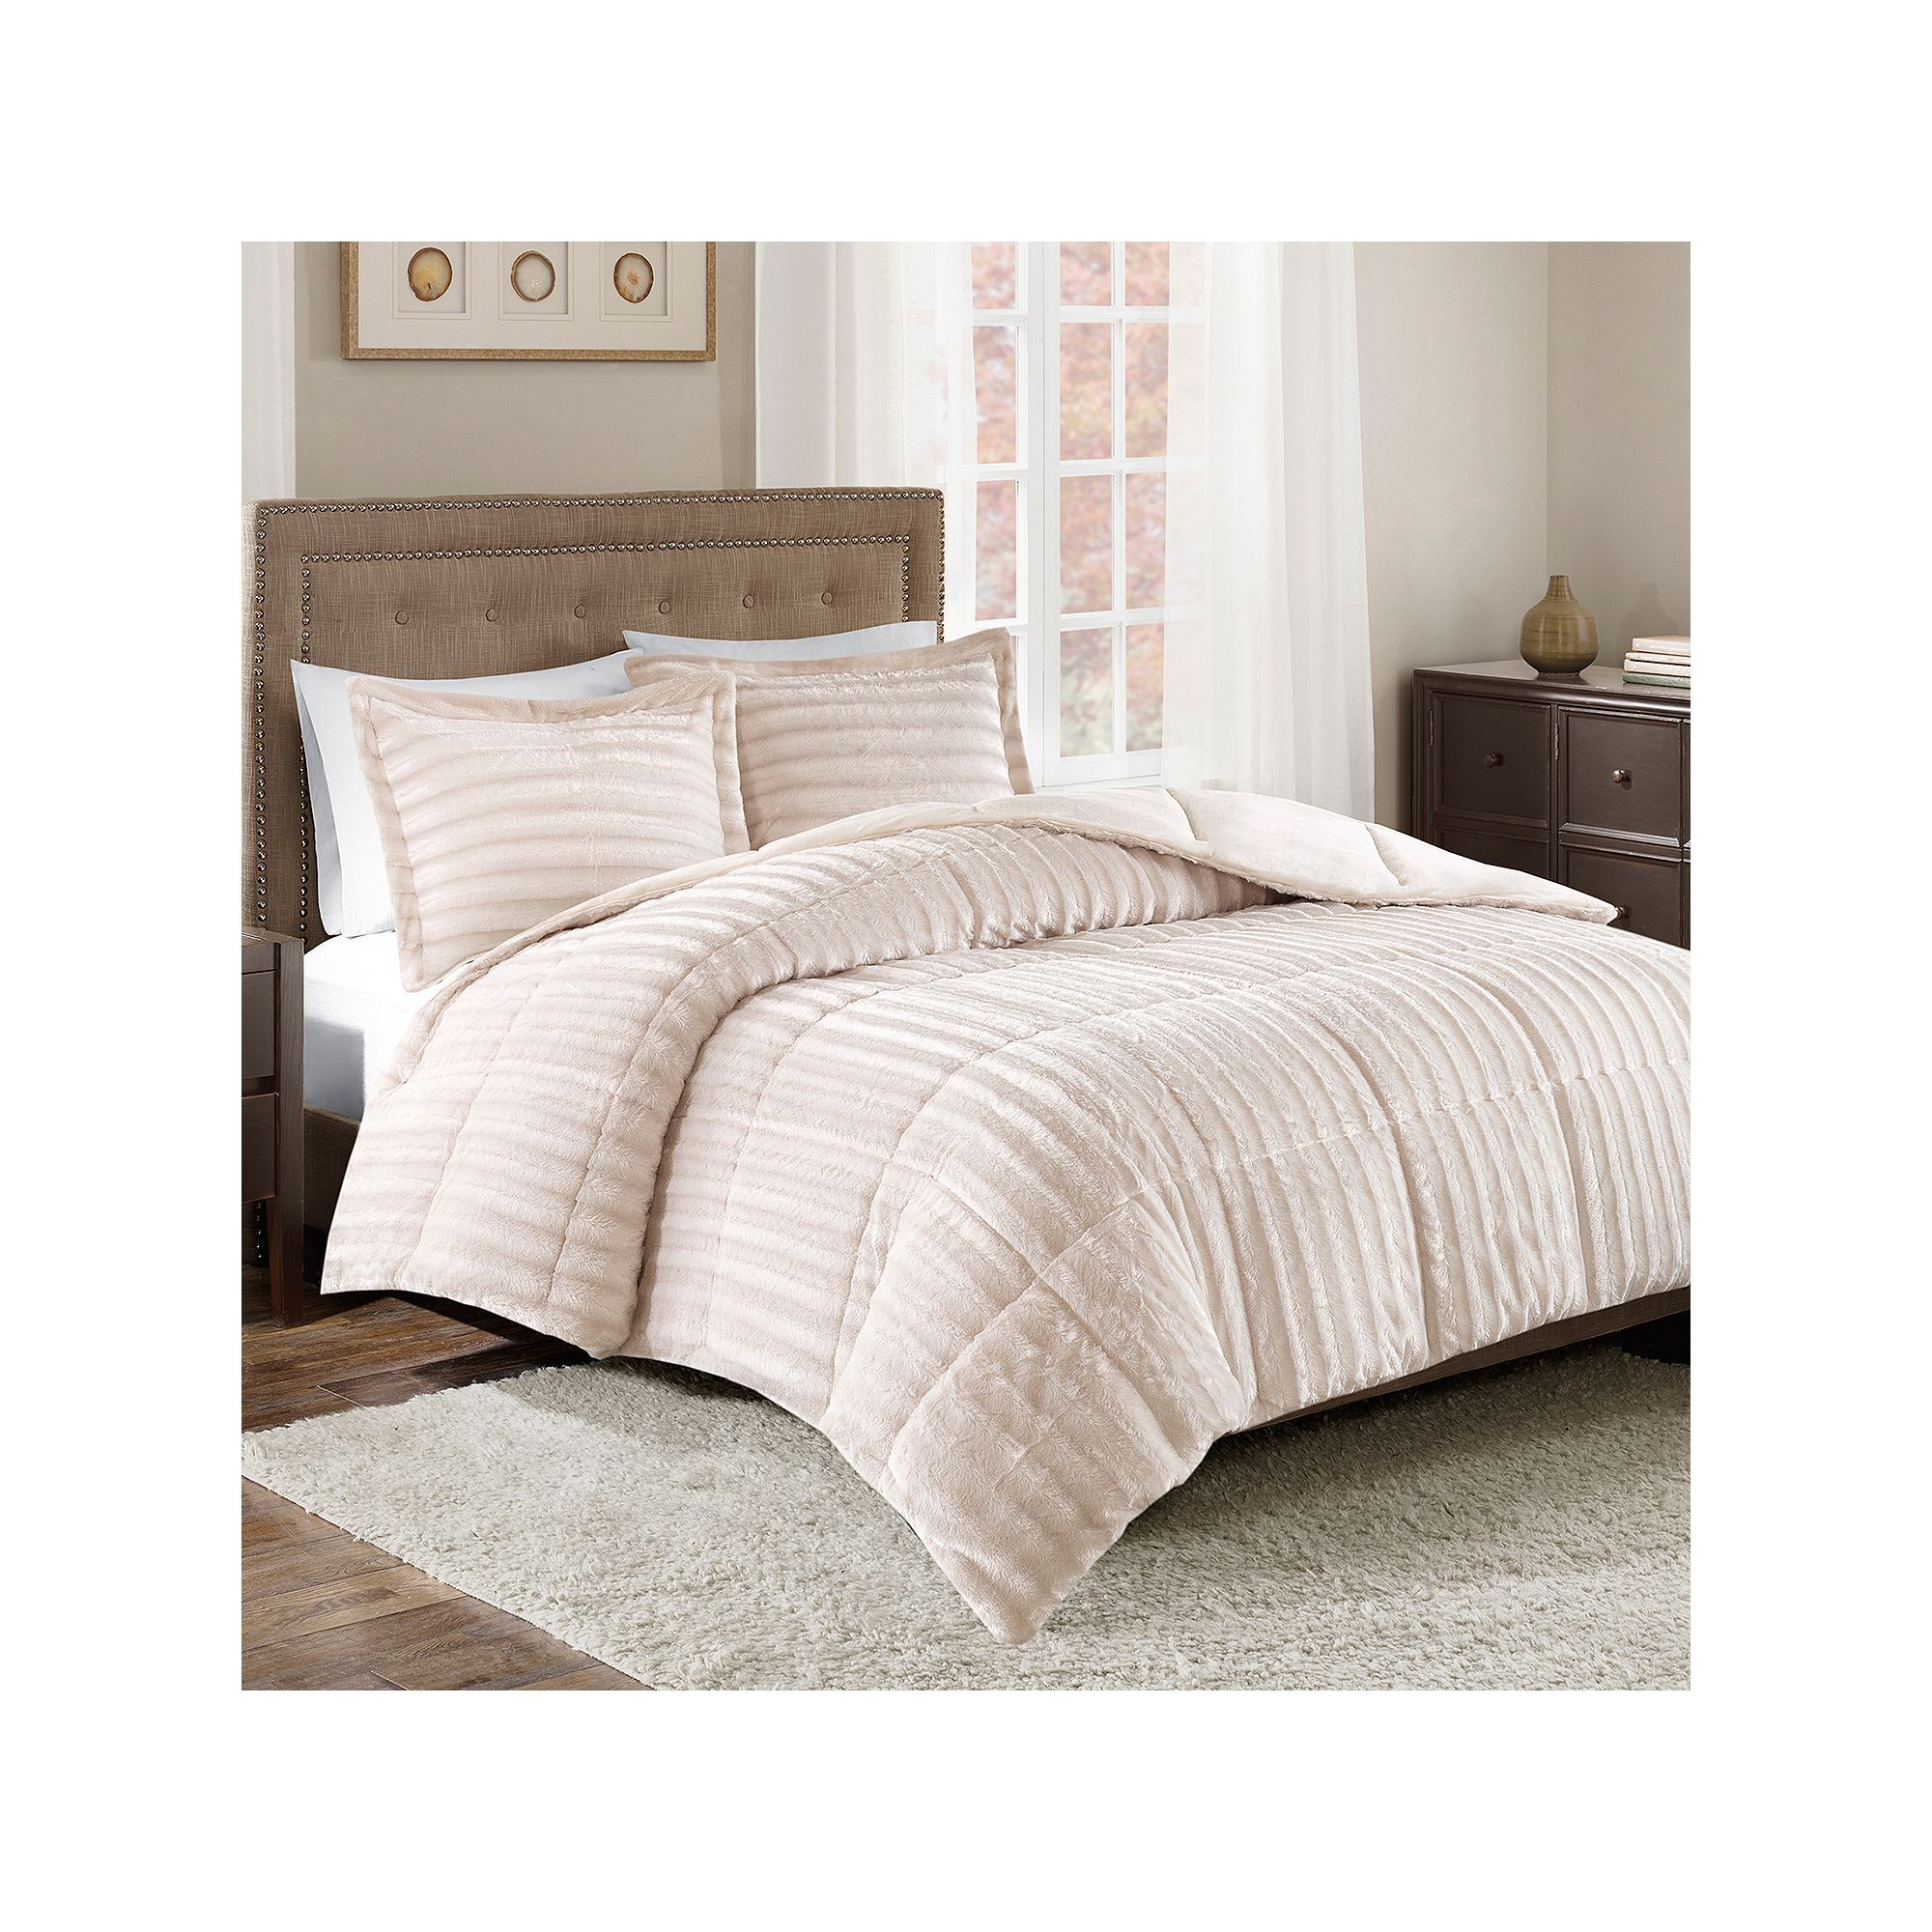 throws c casa the zeta n bedding x faux for throw com jones qvc audrey home bed fur